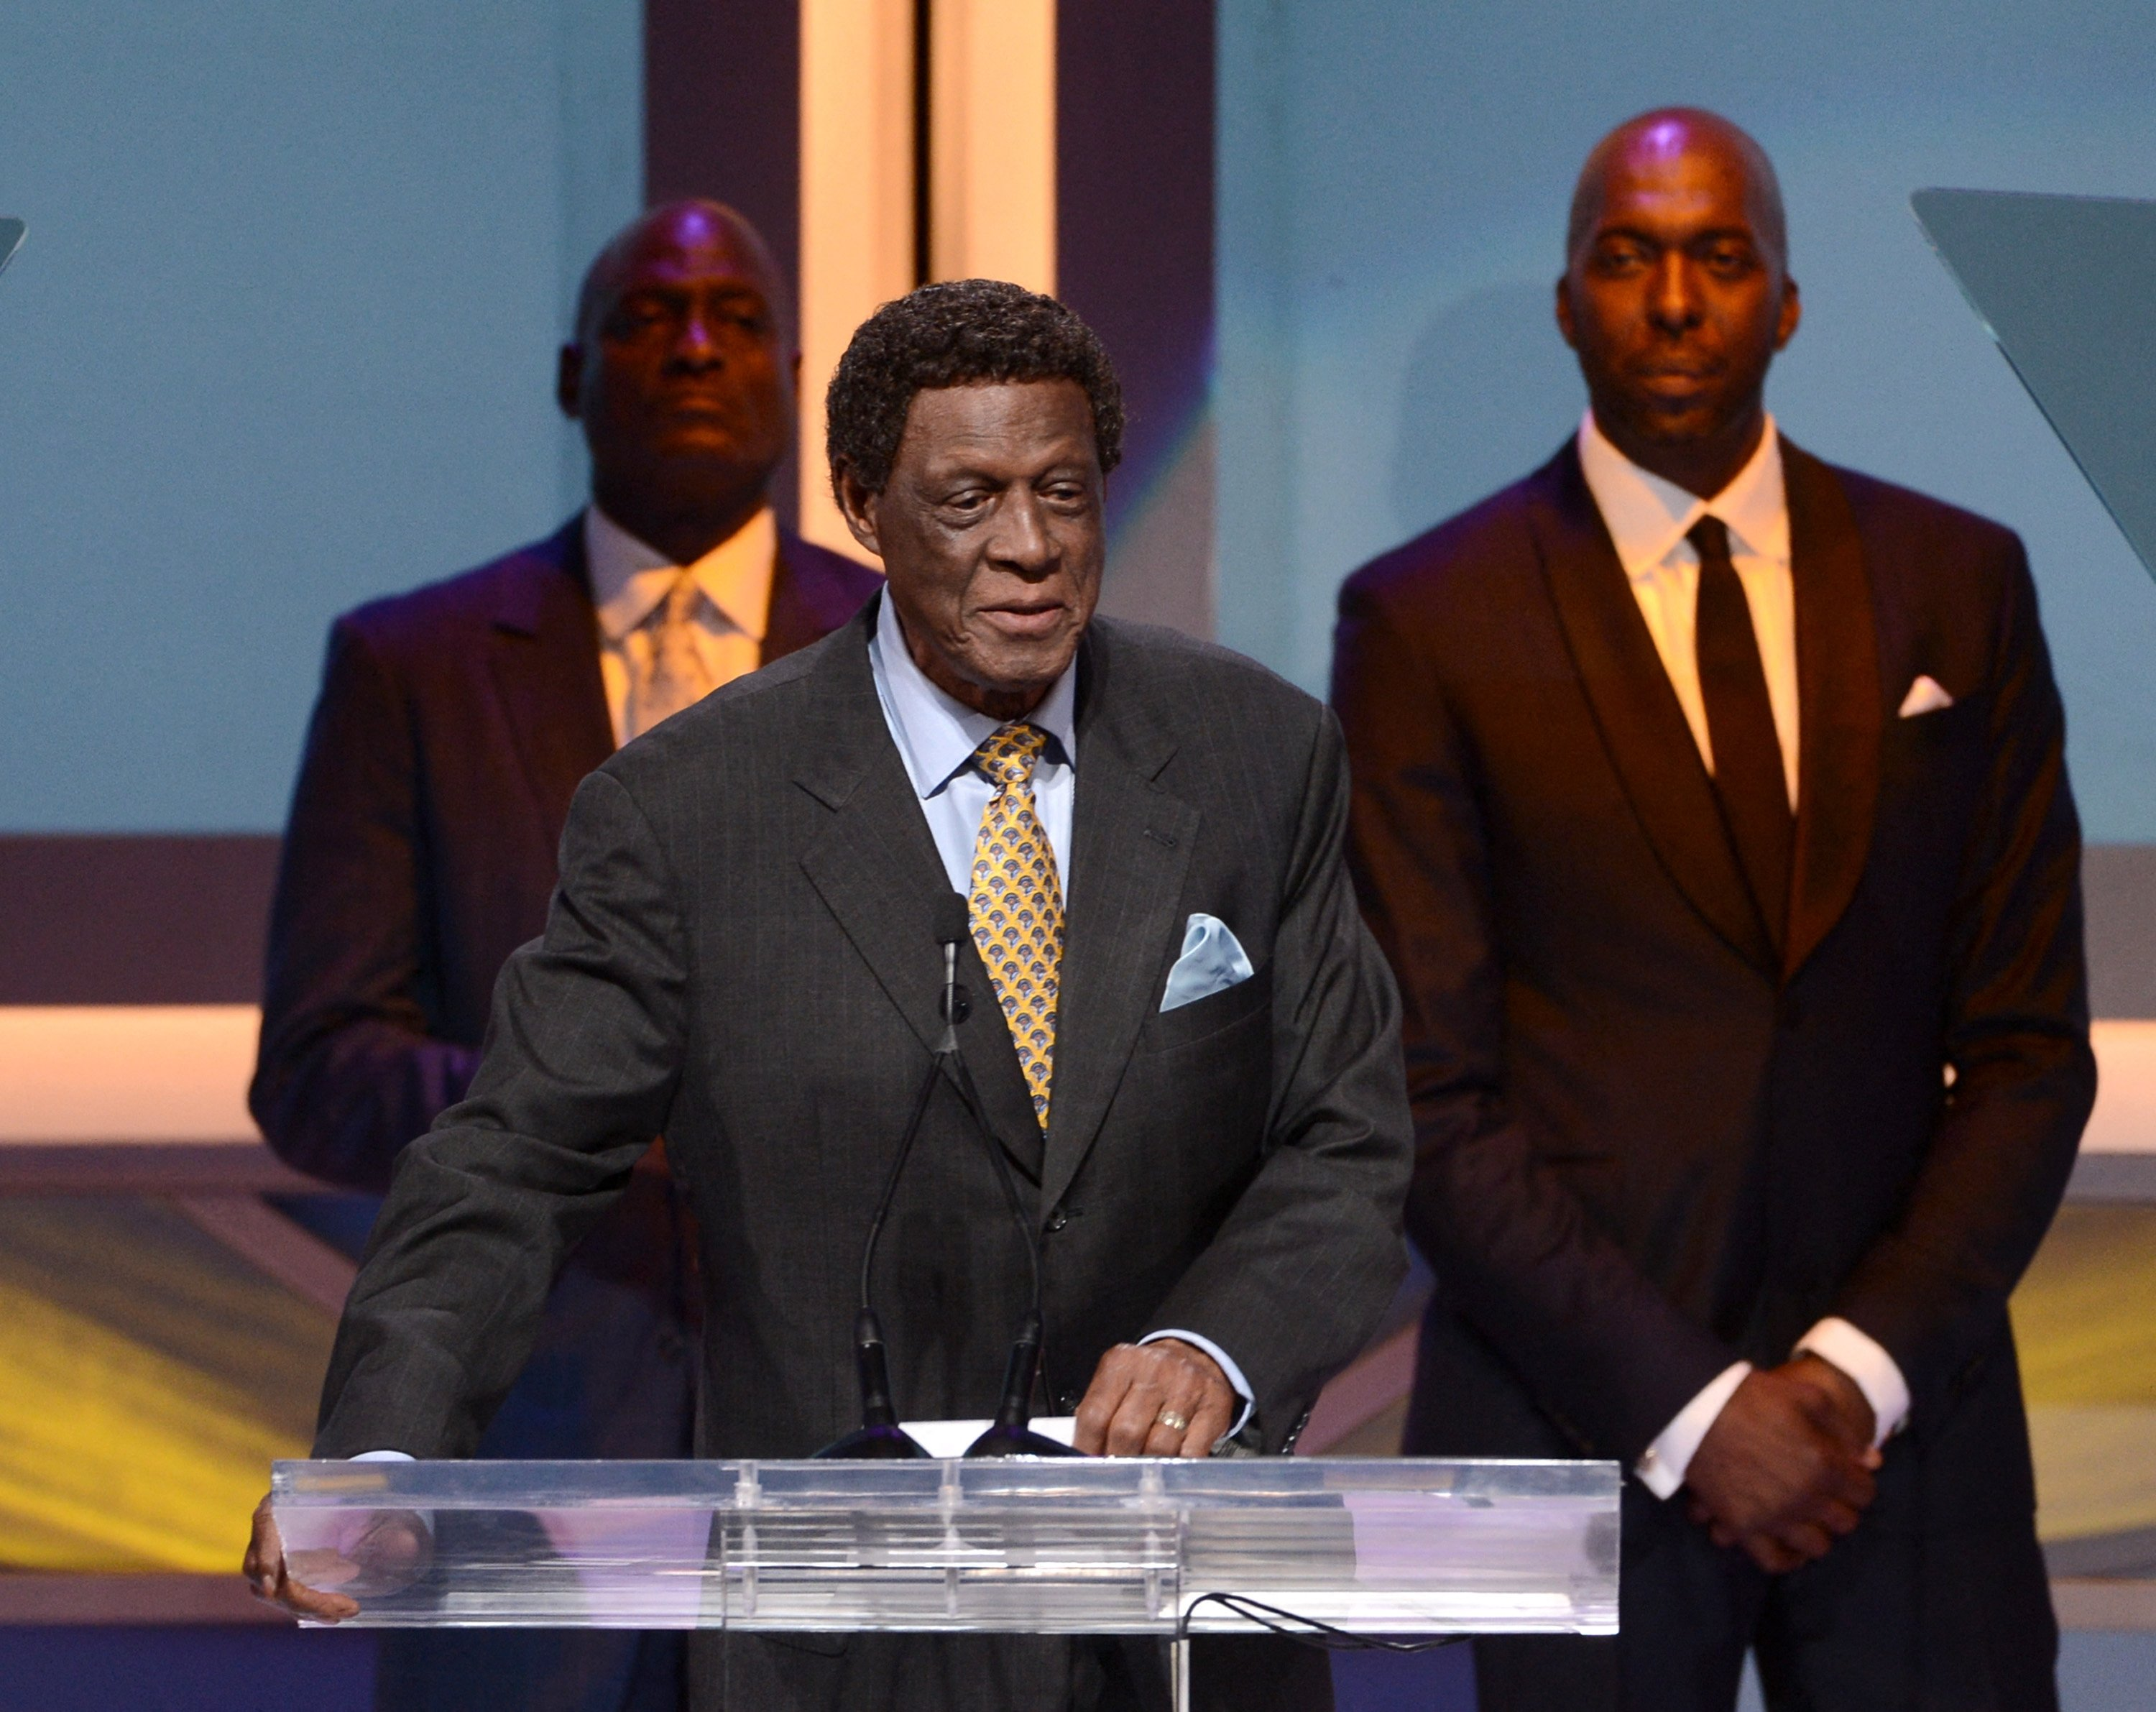 Former NBA player Elgin Baylor speaks onstage at the 28th Anniversary Sports Spectacular Gala at the Hyatt Regency Century Plaza in Century City, California, U.S., May 18, 2013. (AFP Photo)